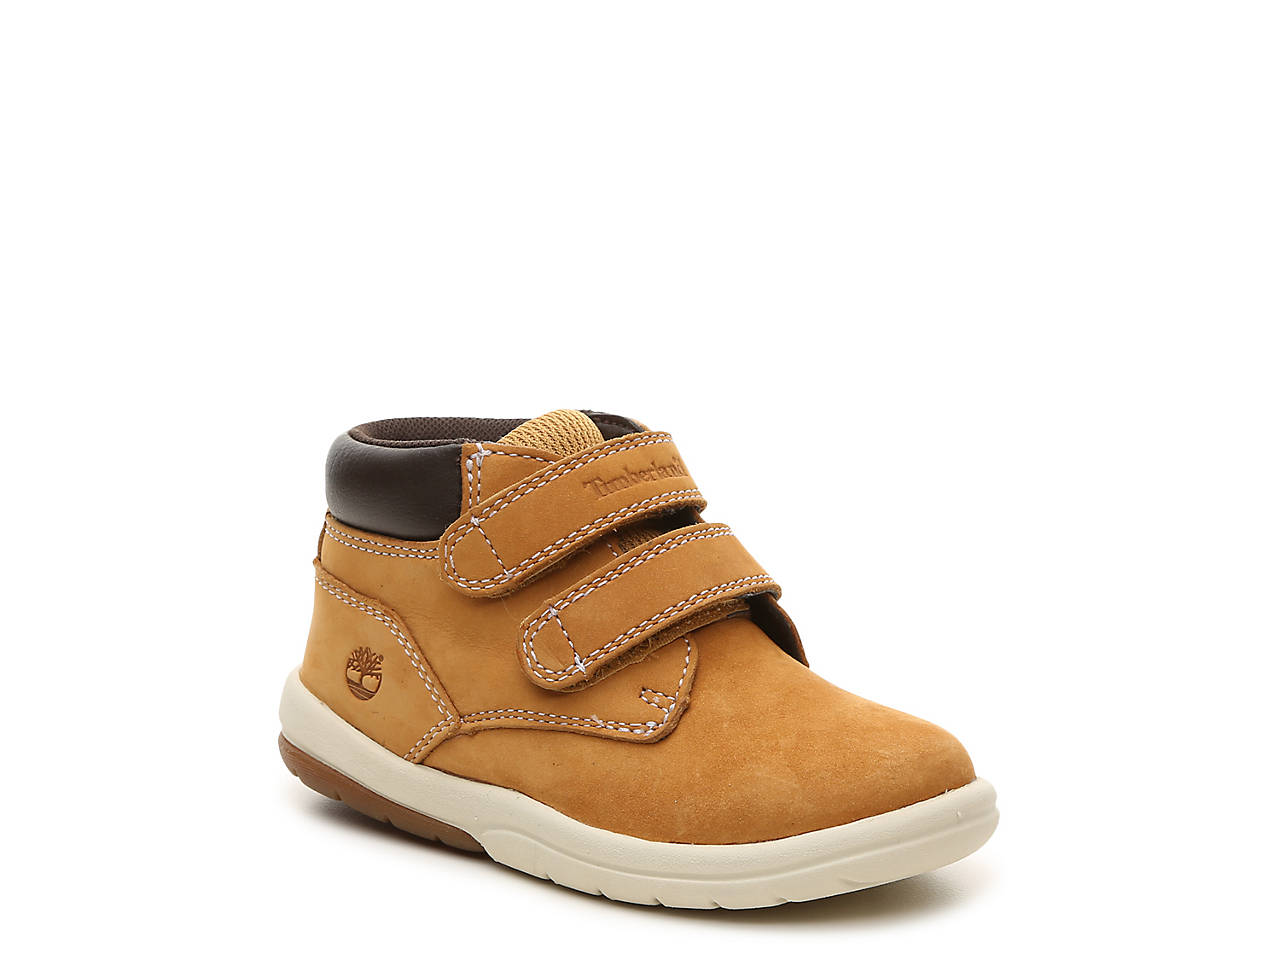 Timberland Toddle Tracks Boot Kids' Kids Shoes DSW  DSW